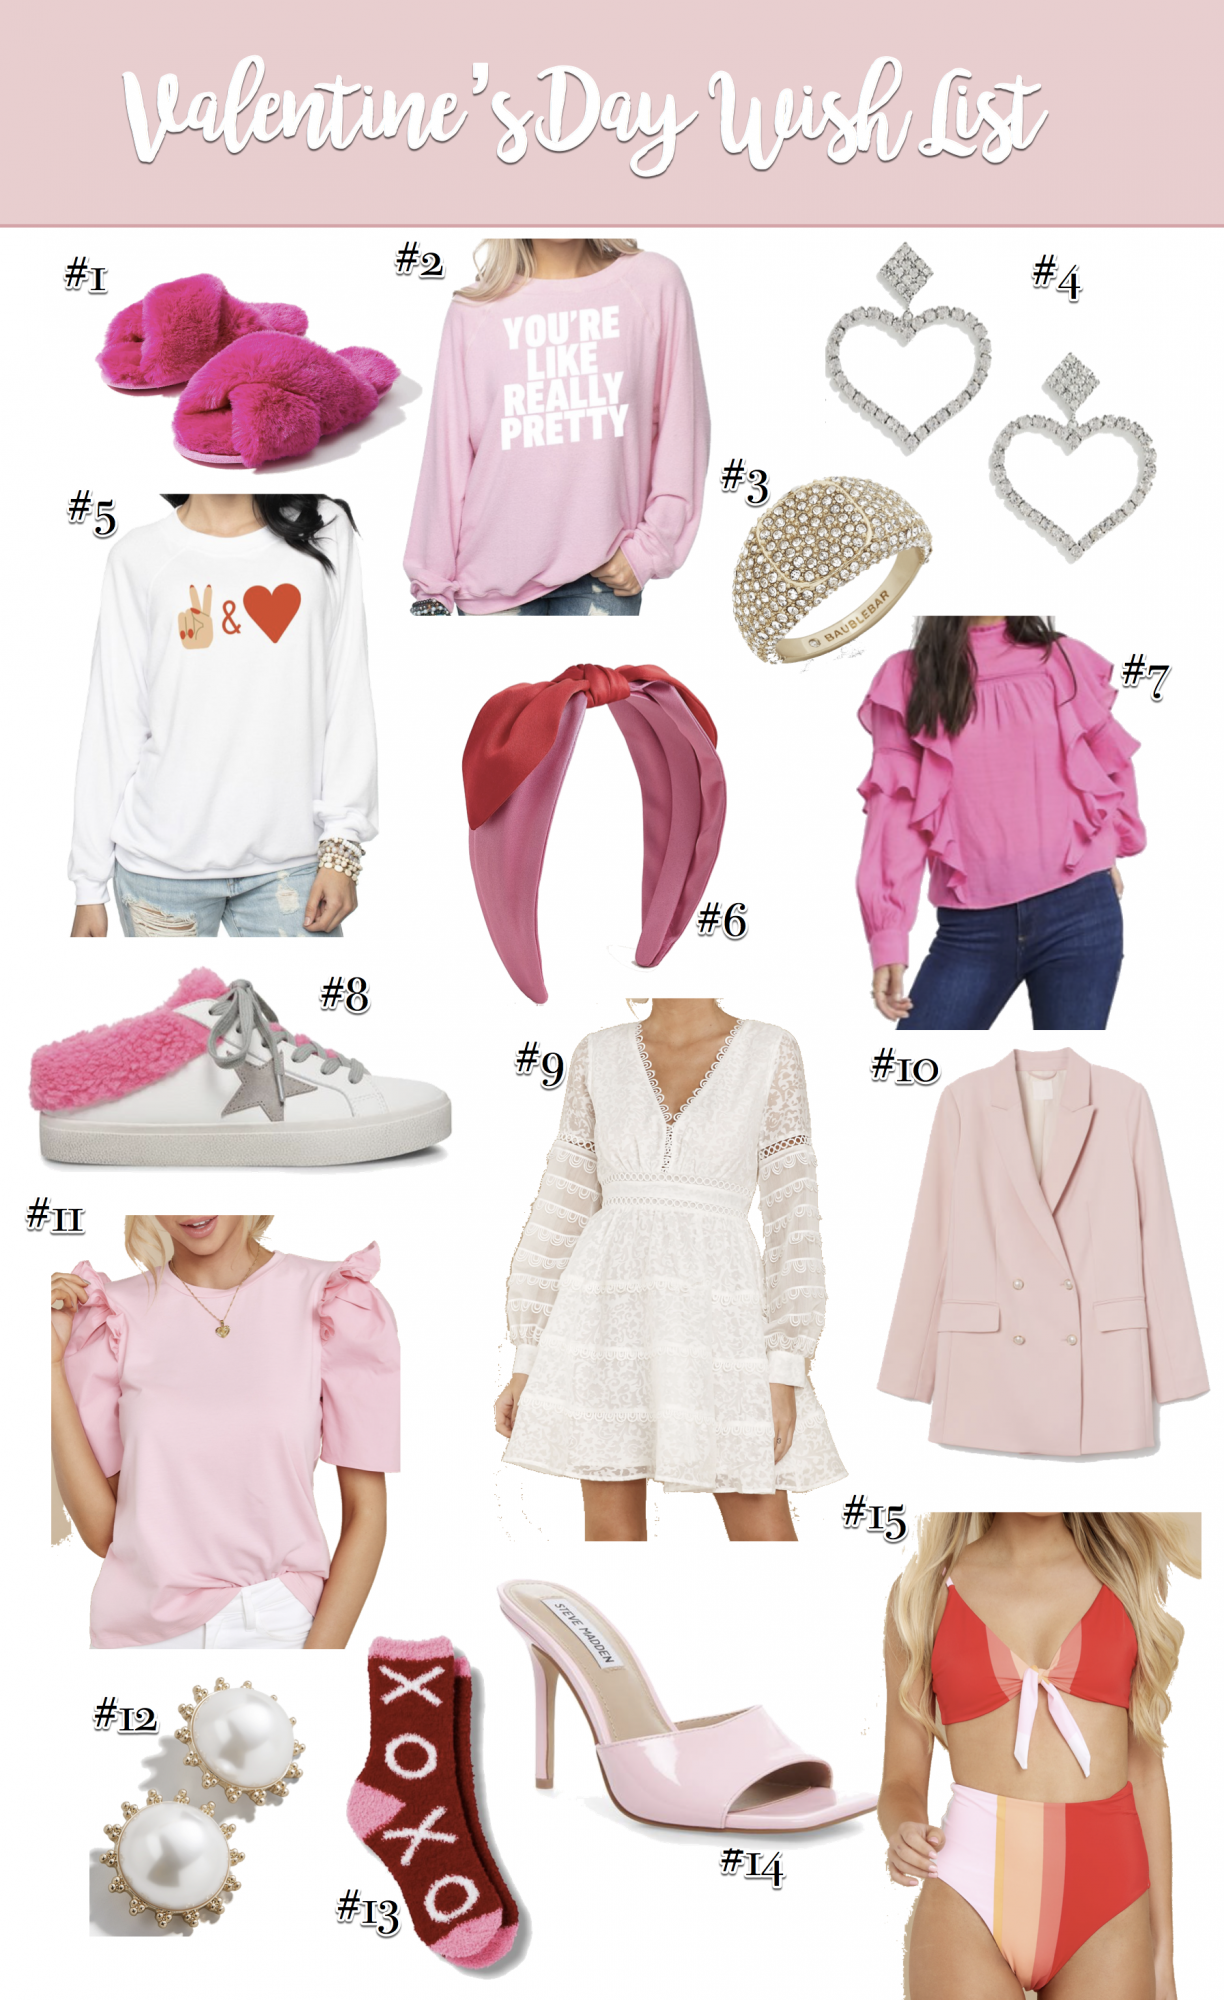 valentines 2020 wish list gift guide | 2020 Valentine's Day Wish List by popular US fashion blog, The Sweetest Thing: collage image of Loft FAUX FUR SLIDE SLIPPERS, BUDDYLOVE COURTNEY GRAPHIC SWEATER - YOU'RE LIKE REALLY PRETTY, Baublebar SERILDA RING, Asos True Decadence rhinestone crystal heart drop earrings, BUDDYLOVE KEITH GRAPHIC SWEATER - PEACE AND LOVE, J. Crew Satin bow knot headband, Asos Vero Moda blouse with high neck and ruffle trim in pink, Steve Madden PETERS WHITE/PINK, Red Dress Timeless Influencer White Lace Dress, H & M Double-breasted Jacket, Red Dress Get Noticed Pink Top ENGLISH FACTORY, BaubleBar DEE PEARL BUTTON STUD EARRINGS, Target Women's XOXO Valentine's Day Cozy Crew Socks, Steve Madden SIGNAL PINK PATENT Bworldly, and Red Dress Summer Hype Red Multi Stripe Bikini Top.